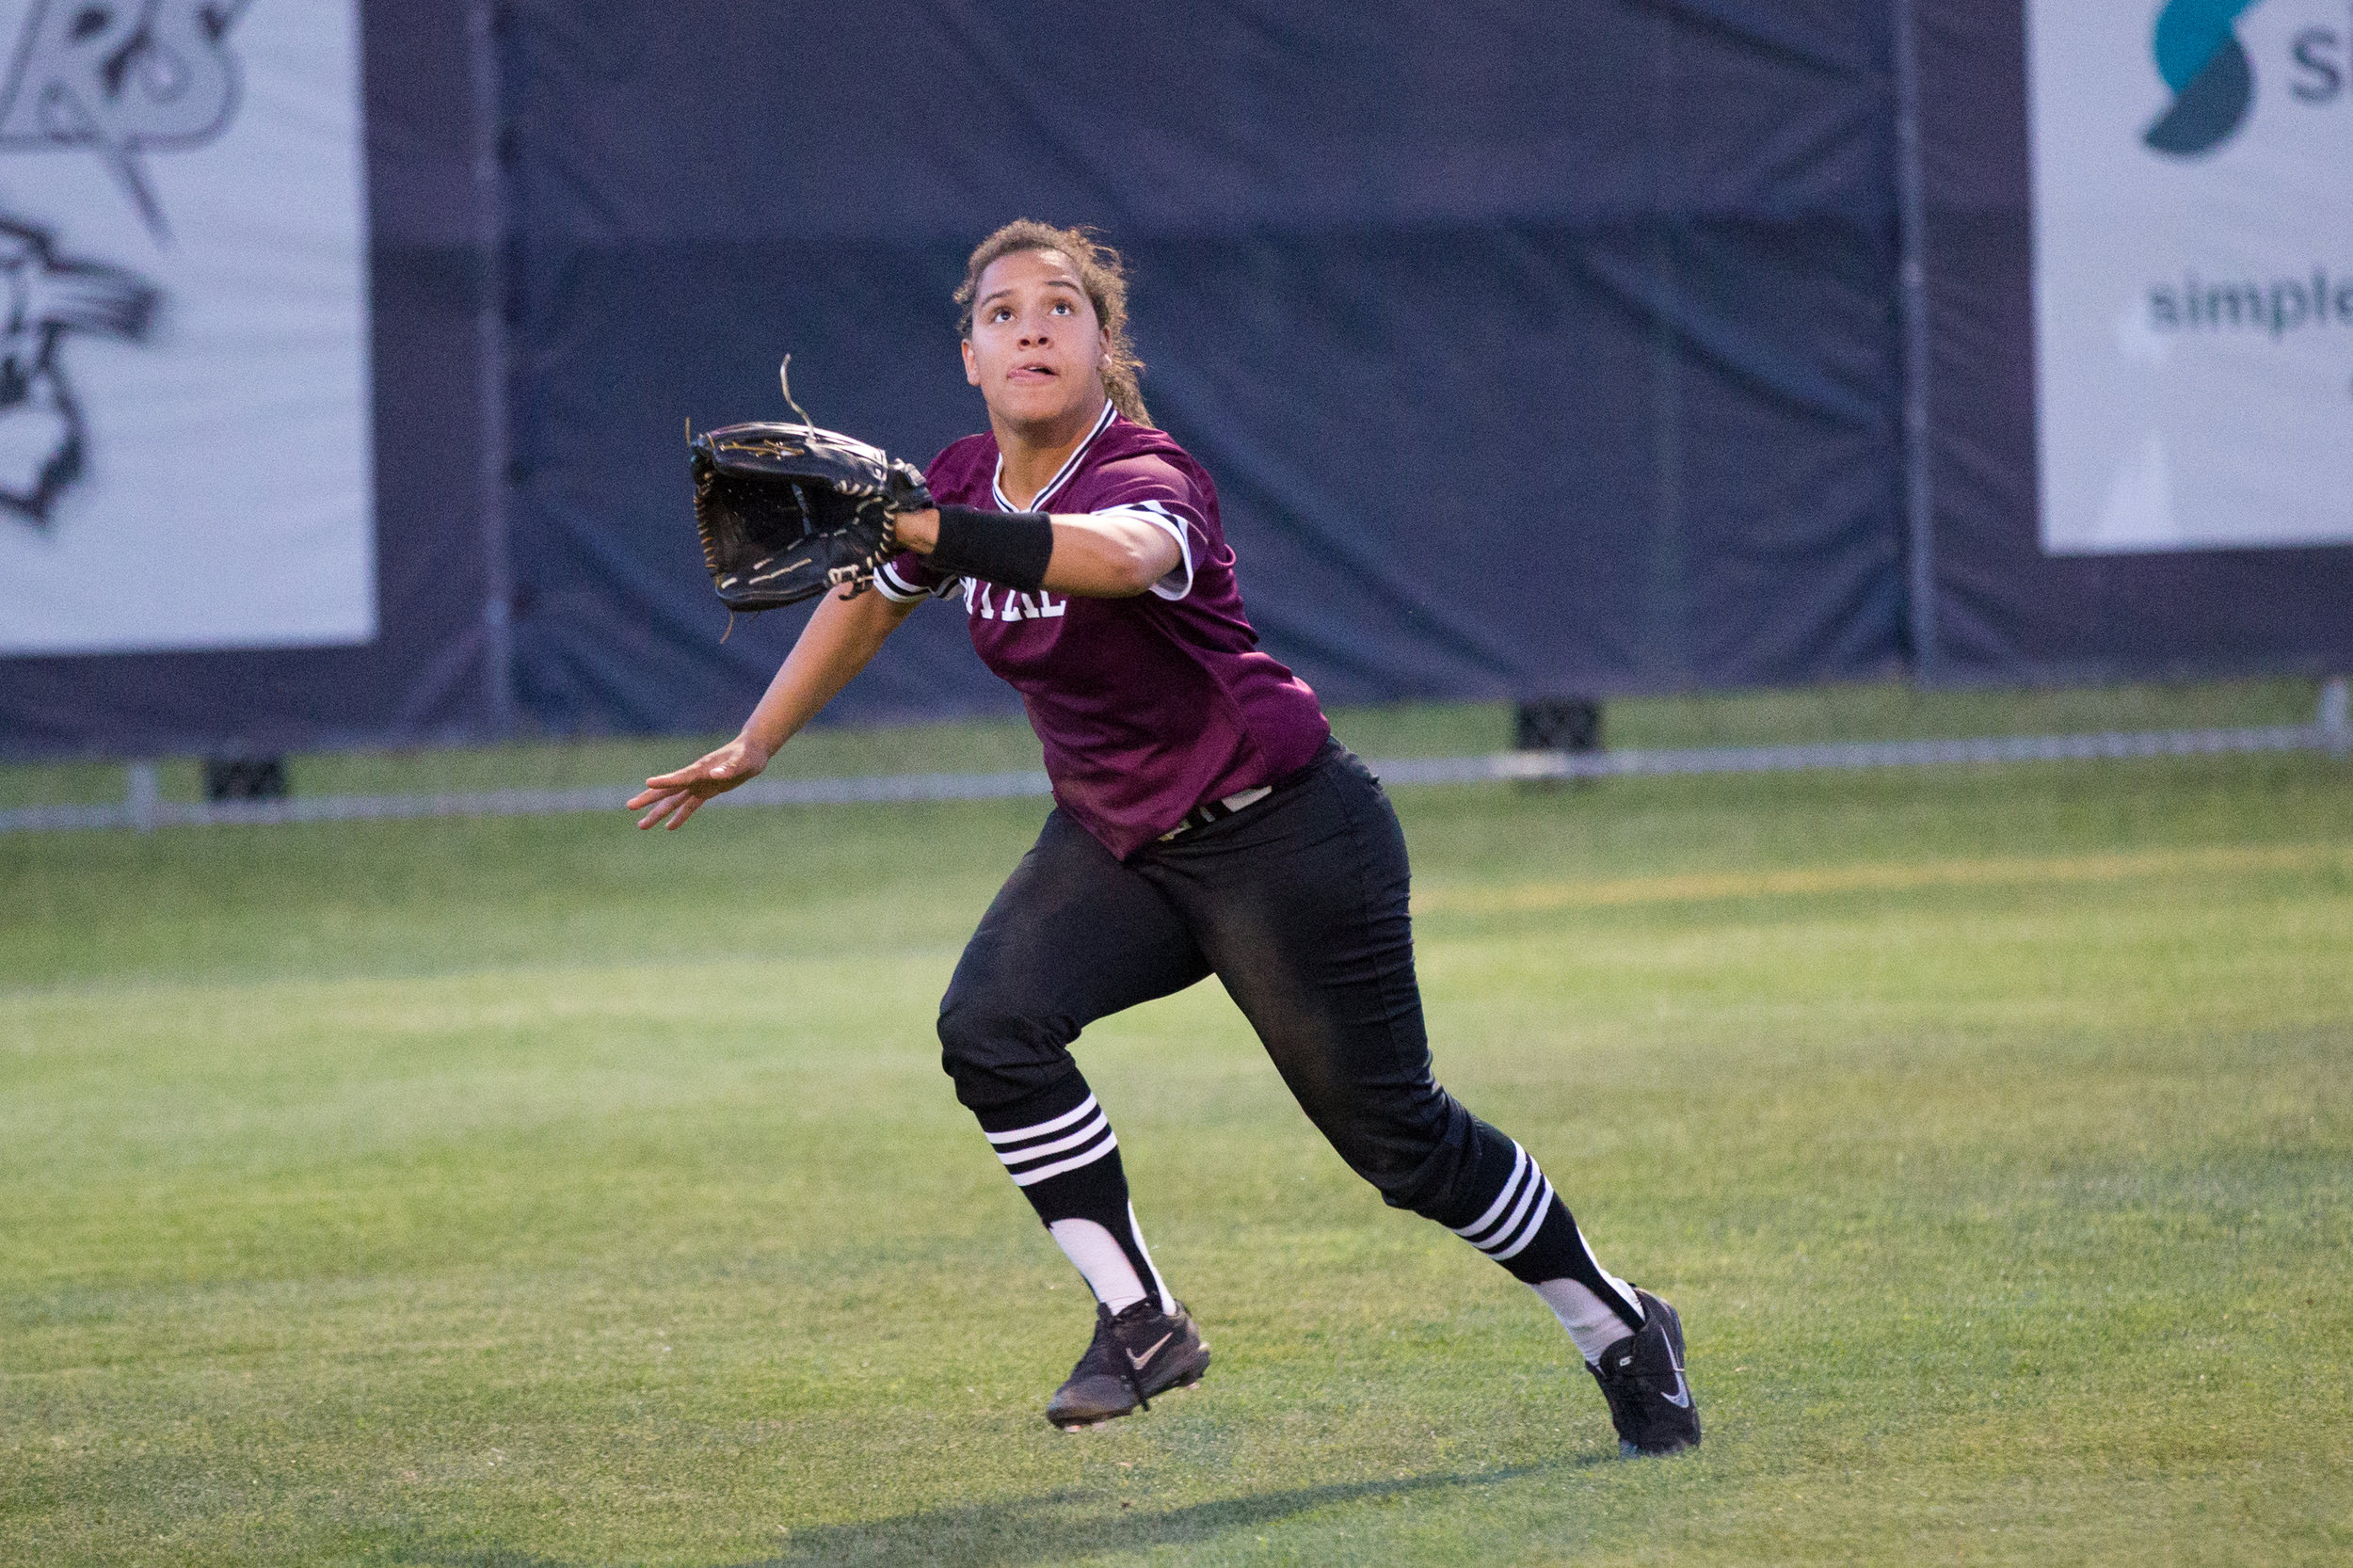 5_18 Wylie Softball-166.jpg